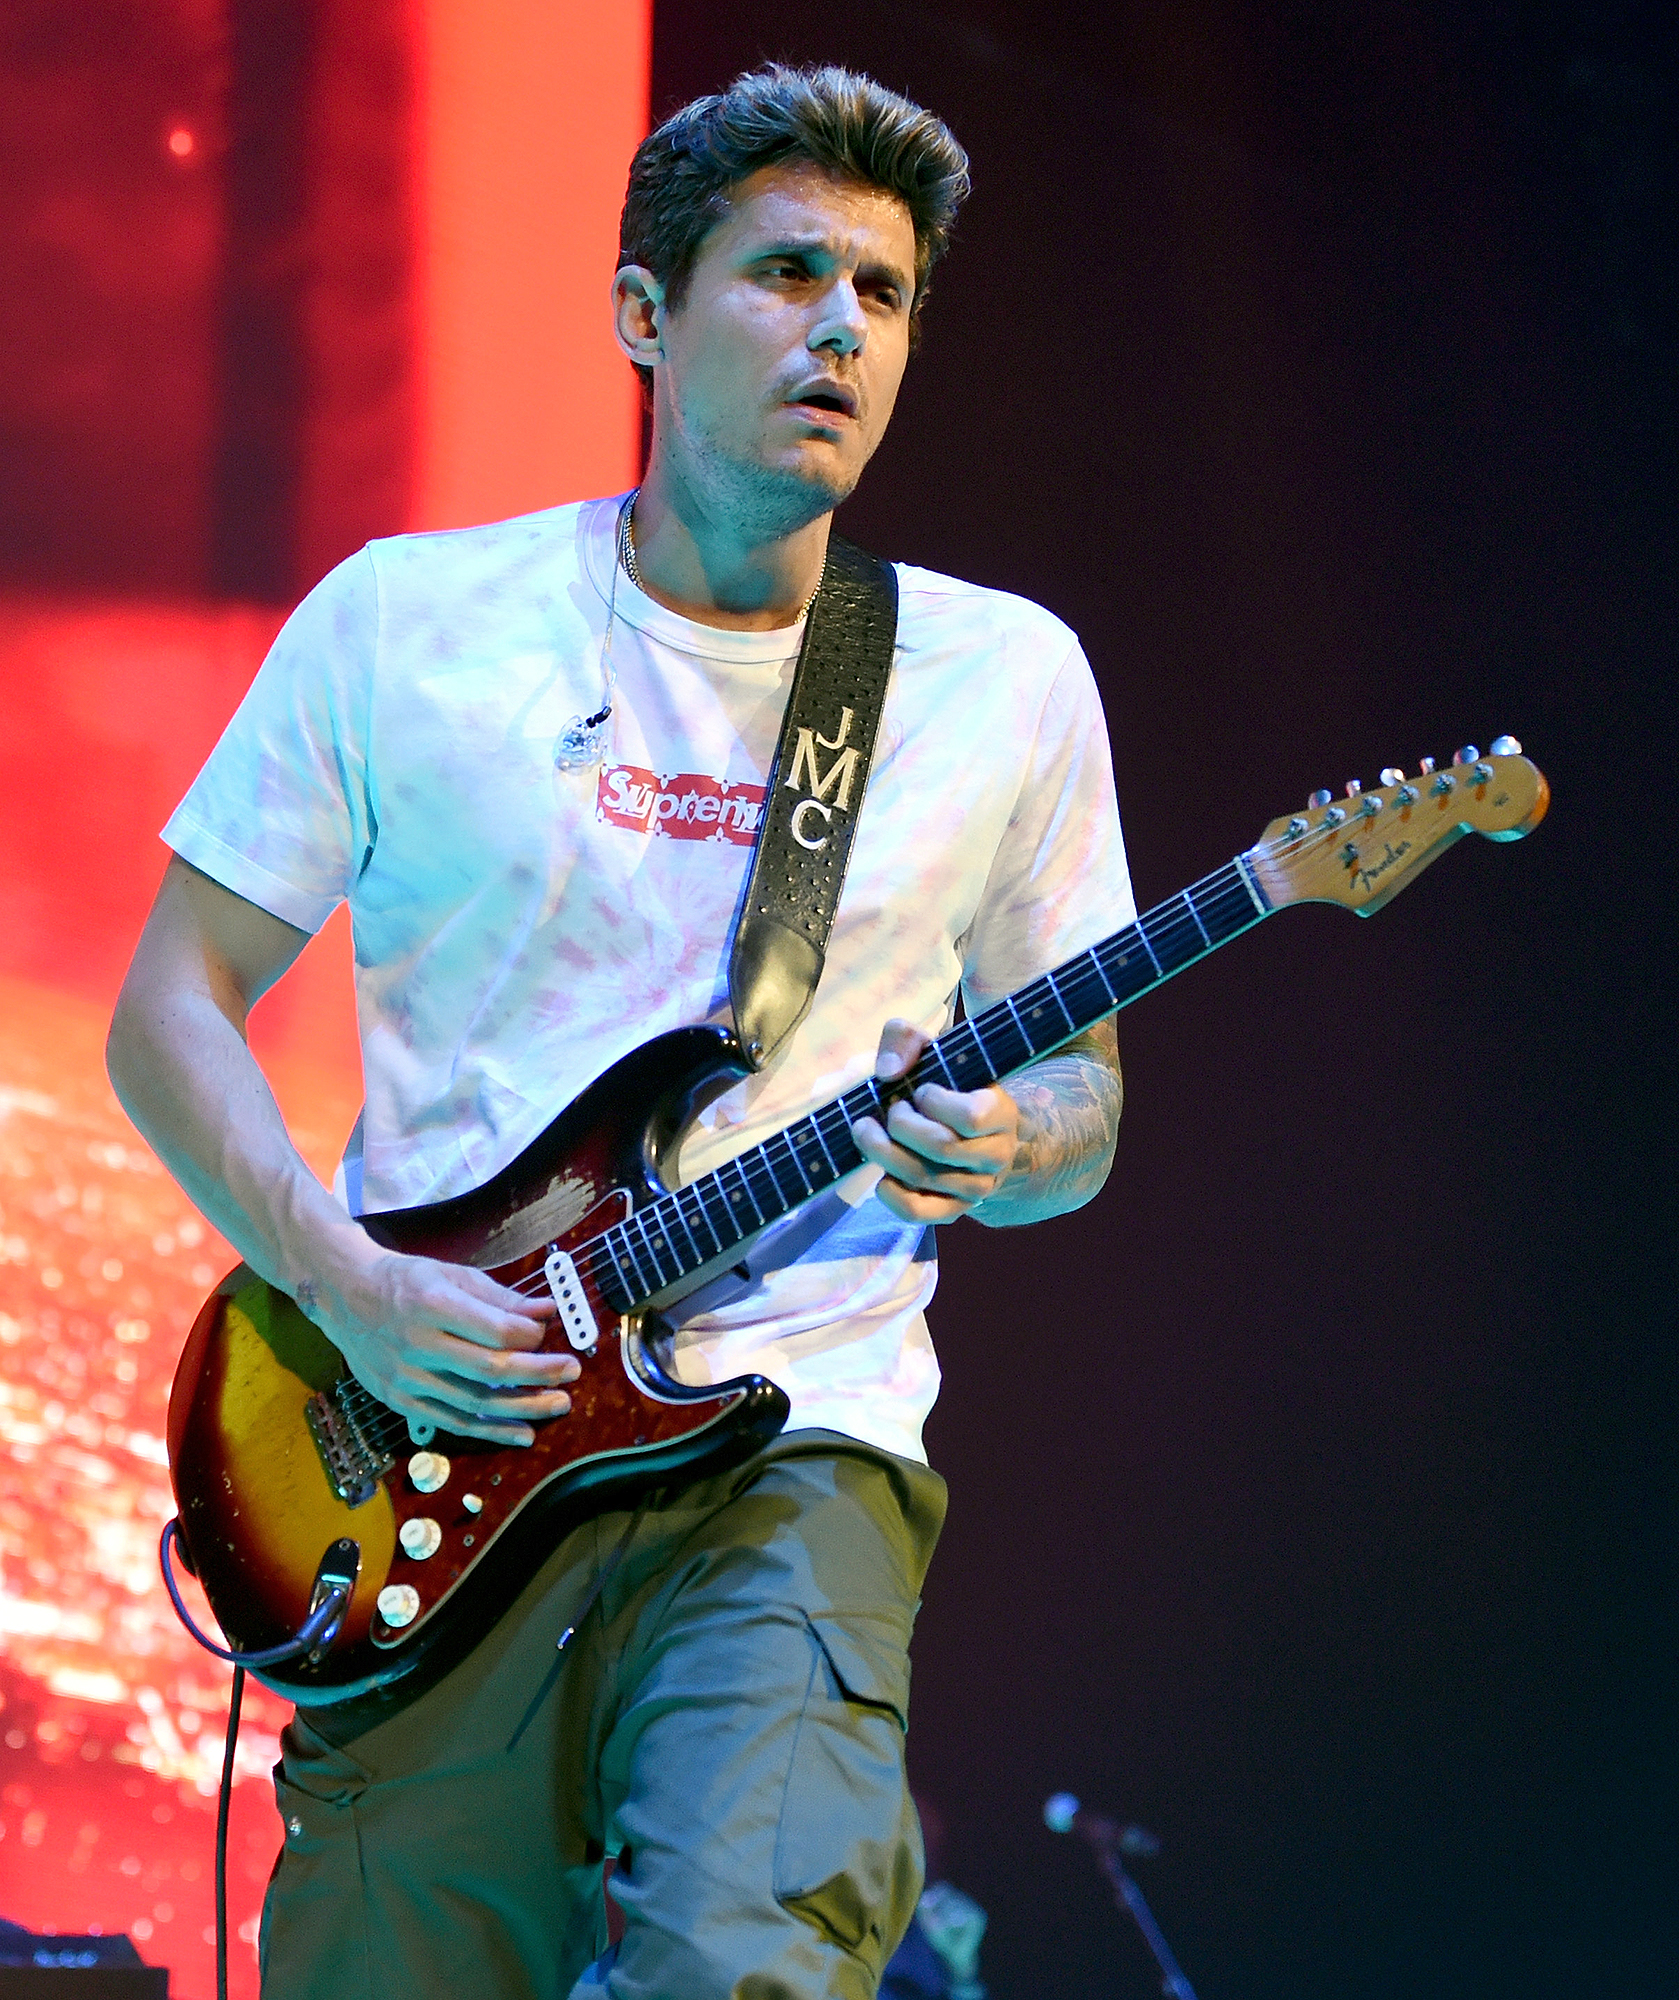 John Mayer Performs At Talking Stick Resort Arena